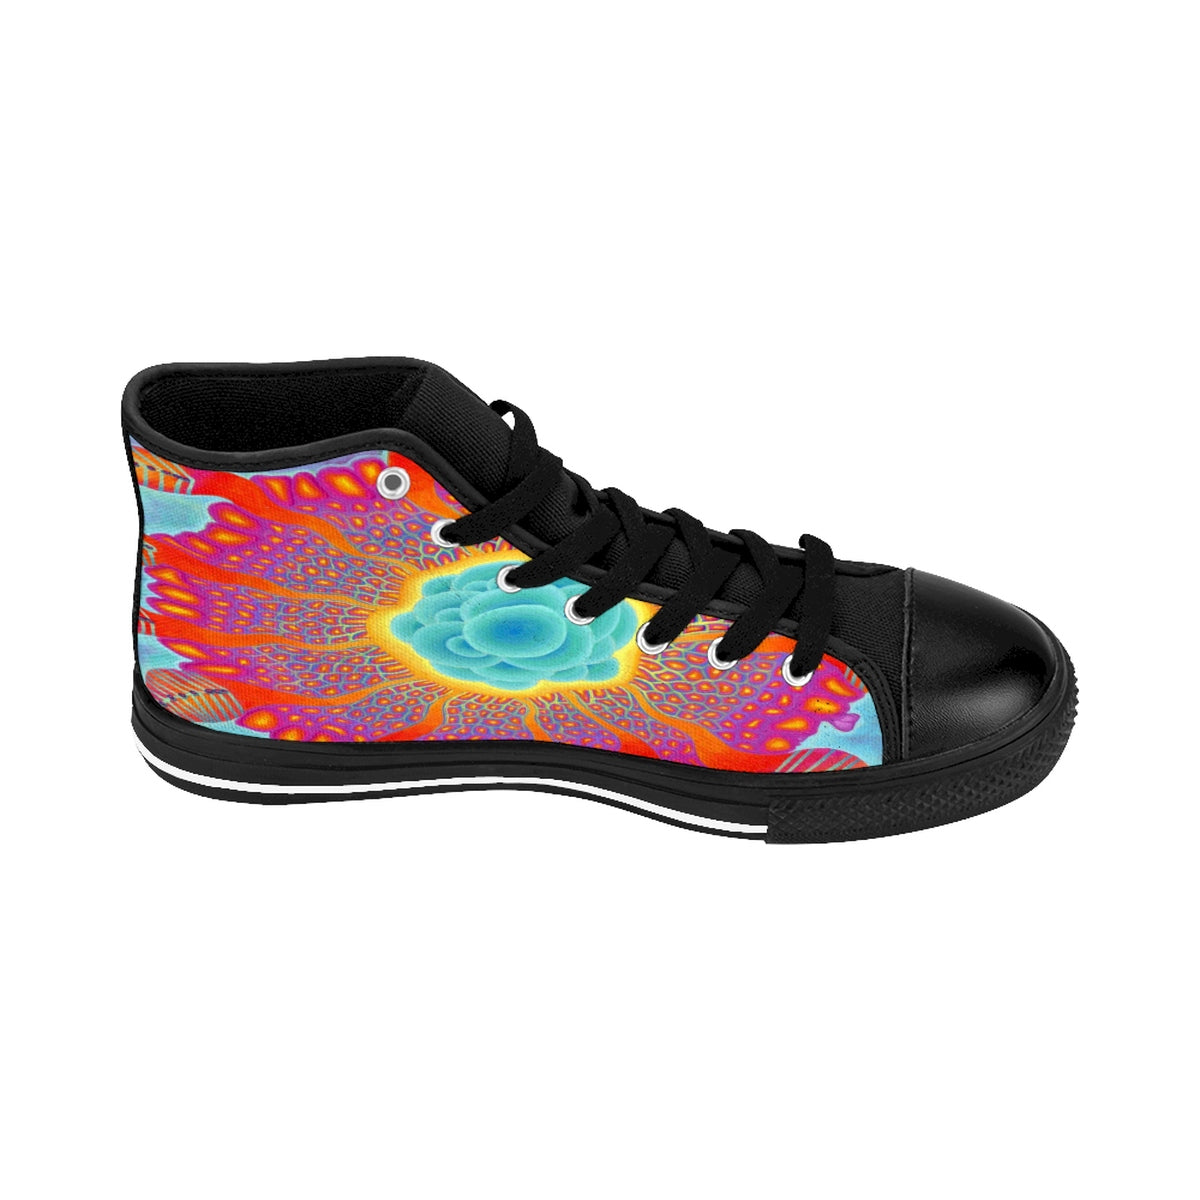 Undula High-top Sneakers